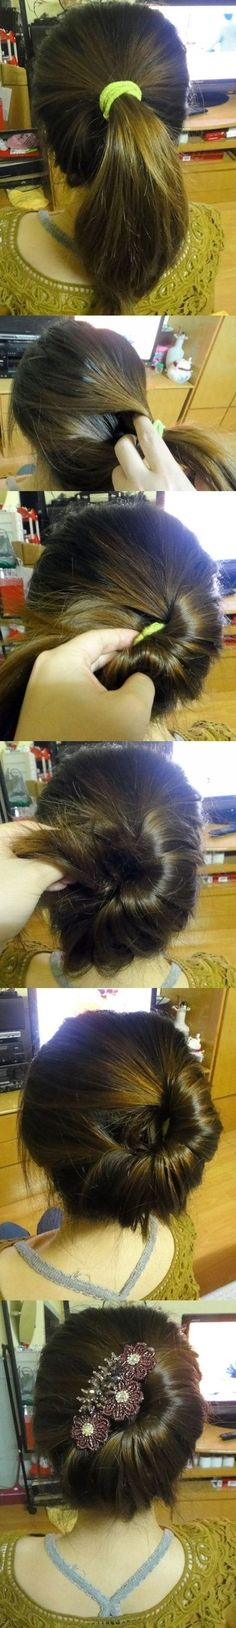 DIY Updo - love this simple look! Never thought to do this to the side. Must try.